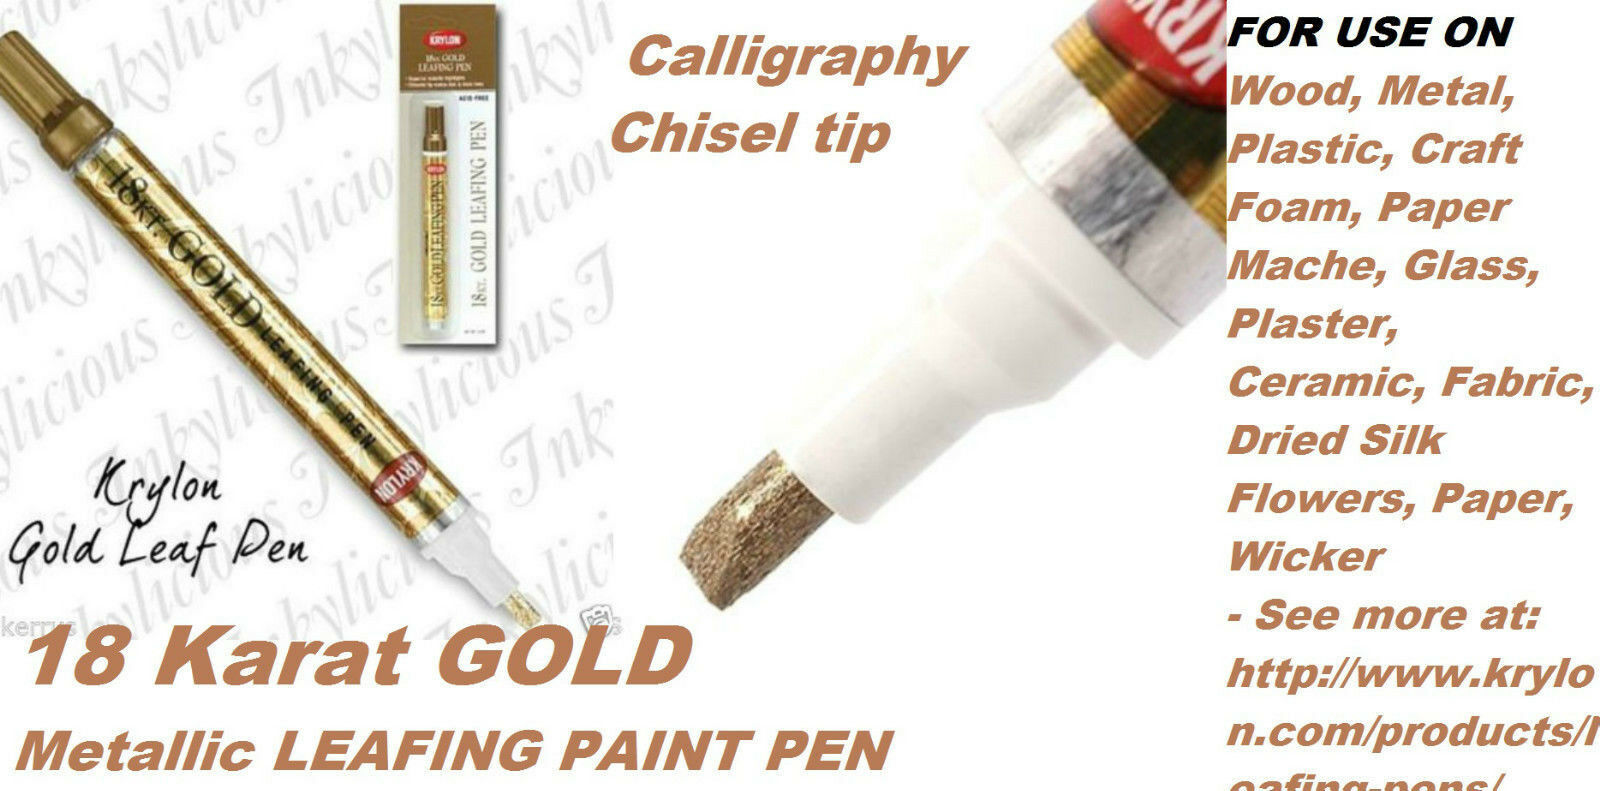 18 Karat Gold Leafing Pen 18kt Metallic Oil Based Leaf Paint Marker Krylon  9901